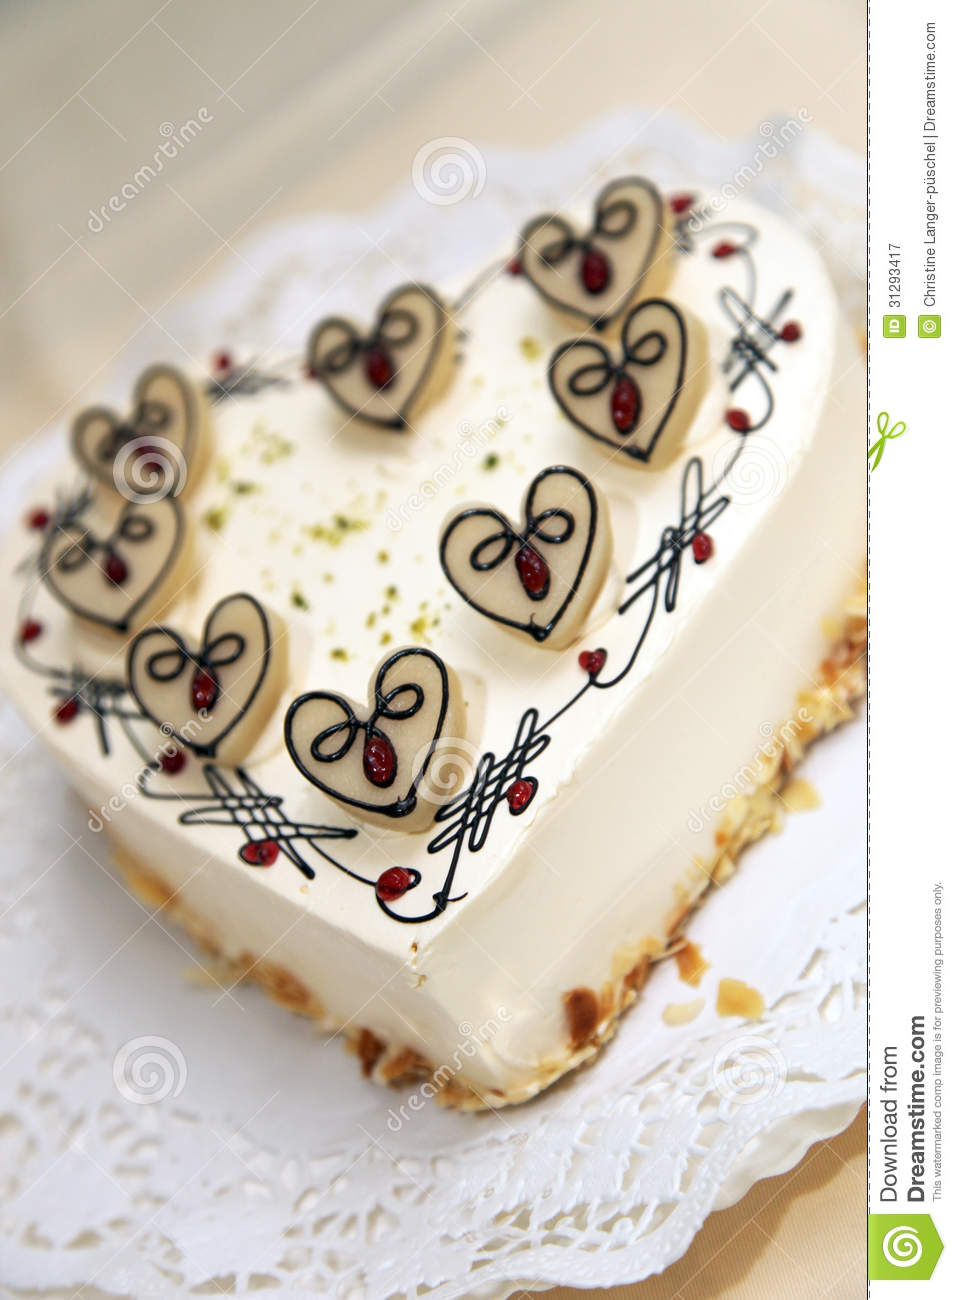 Images Of Heart Shape Cake Designs : Delicious Heart Shaped Cake Royalty Free Stock Photography ...